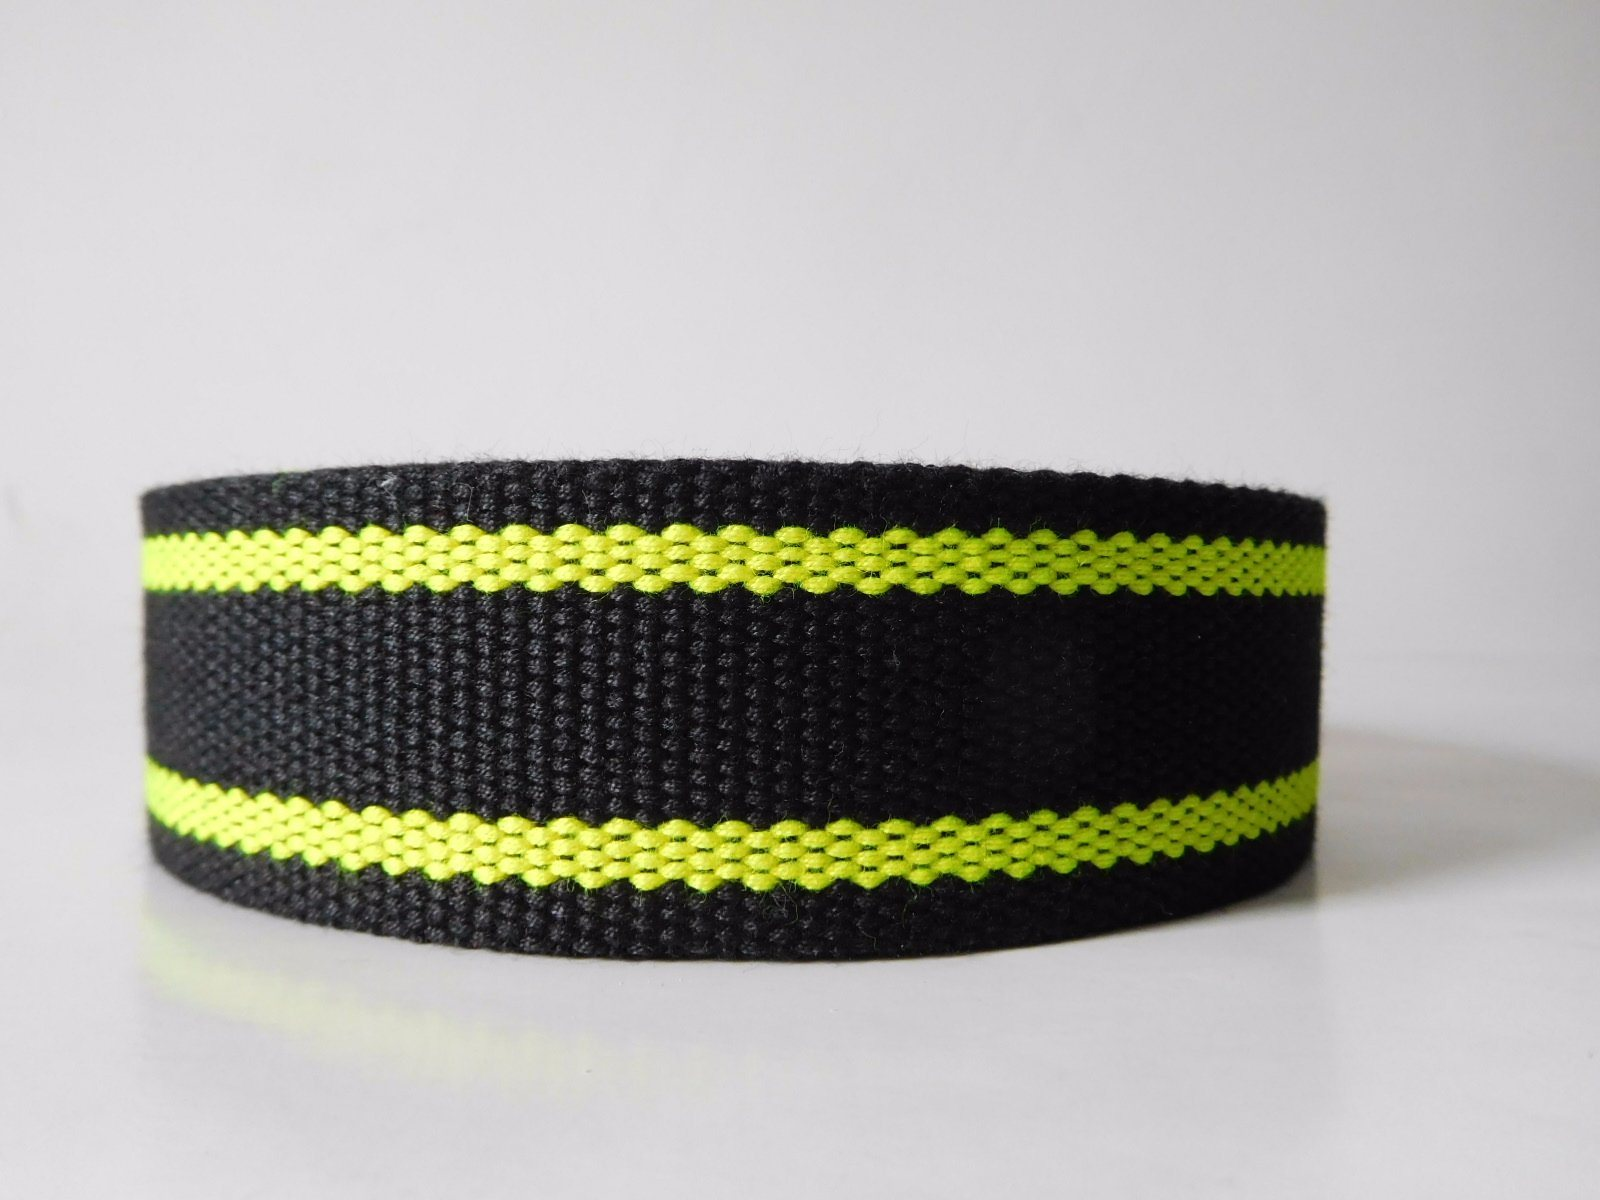 38mm Secondary Color Aramid Fiber Webbing for Fire Safety